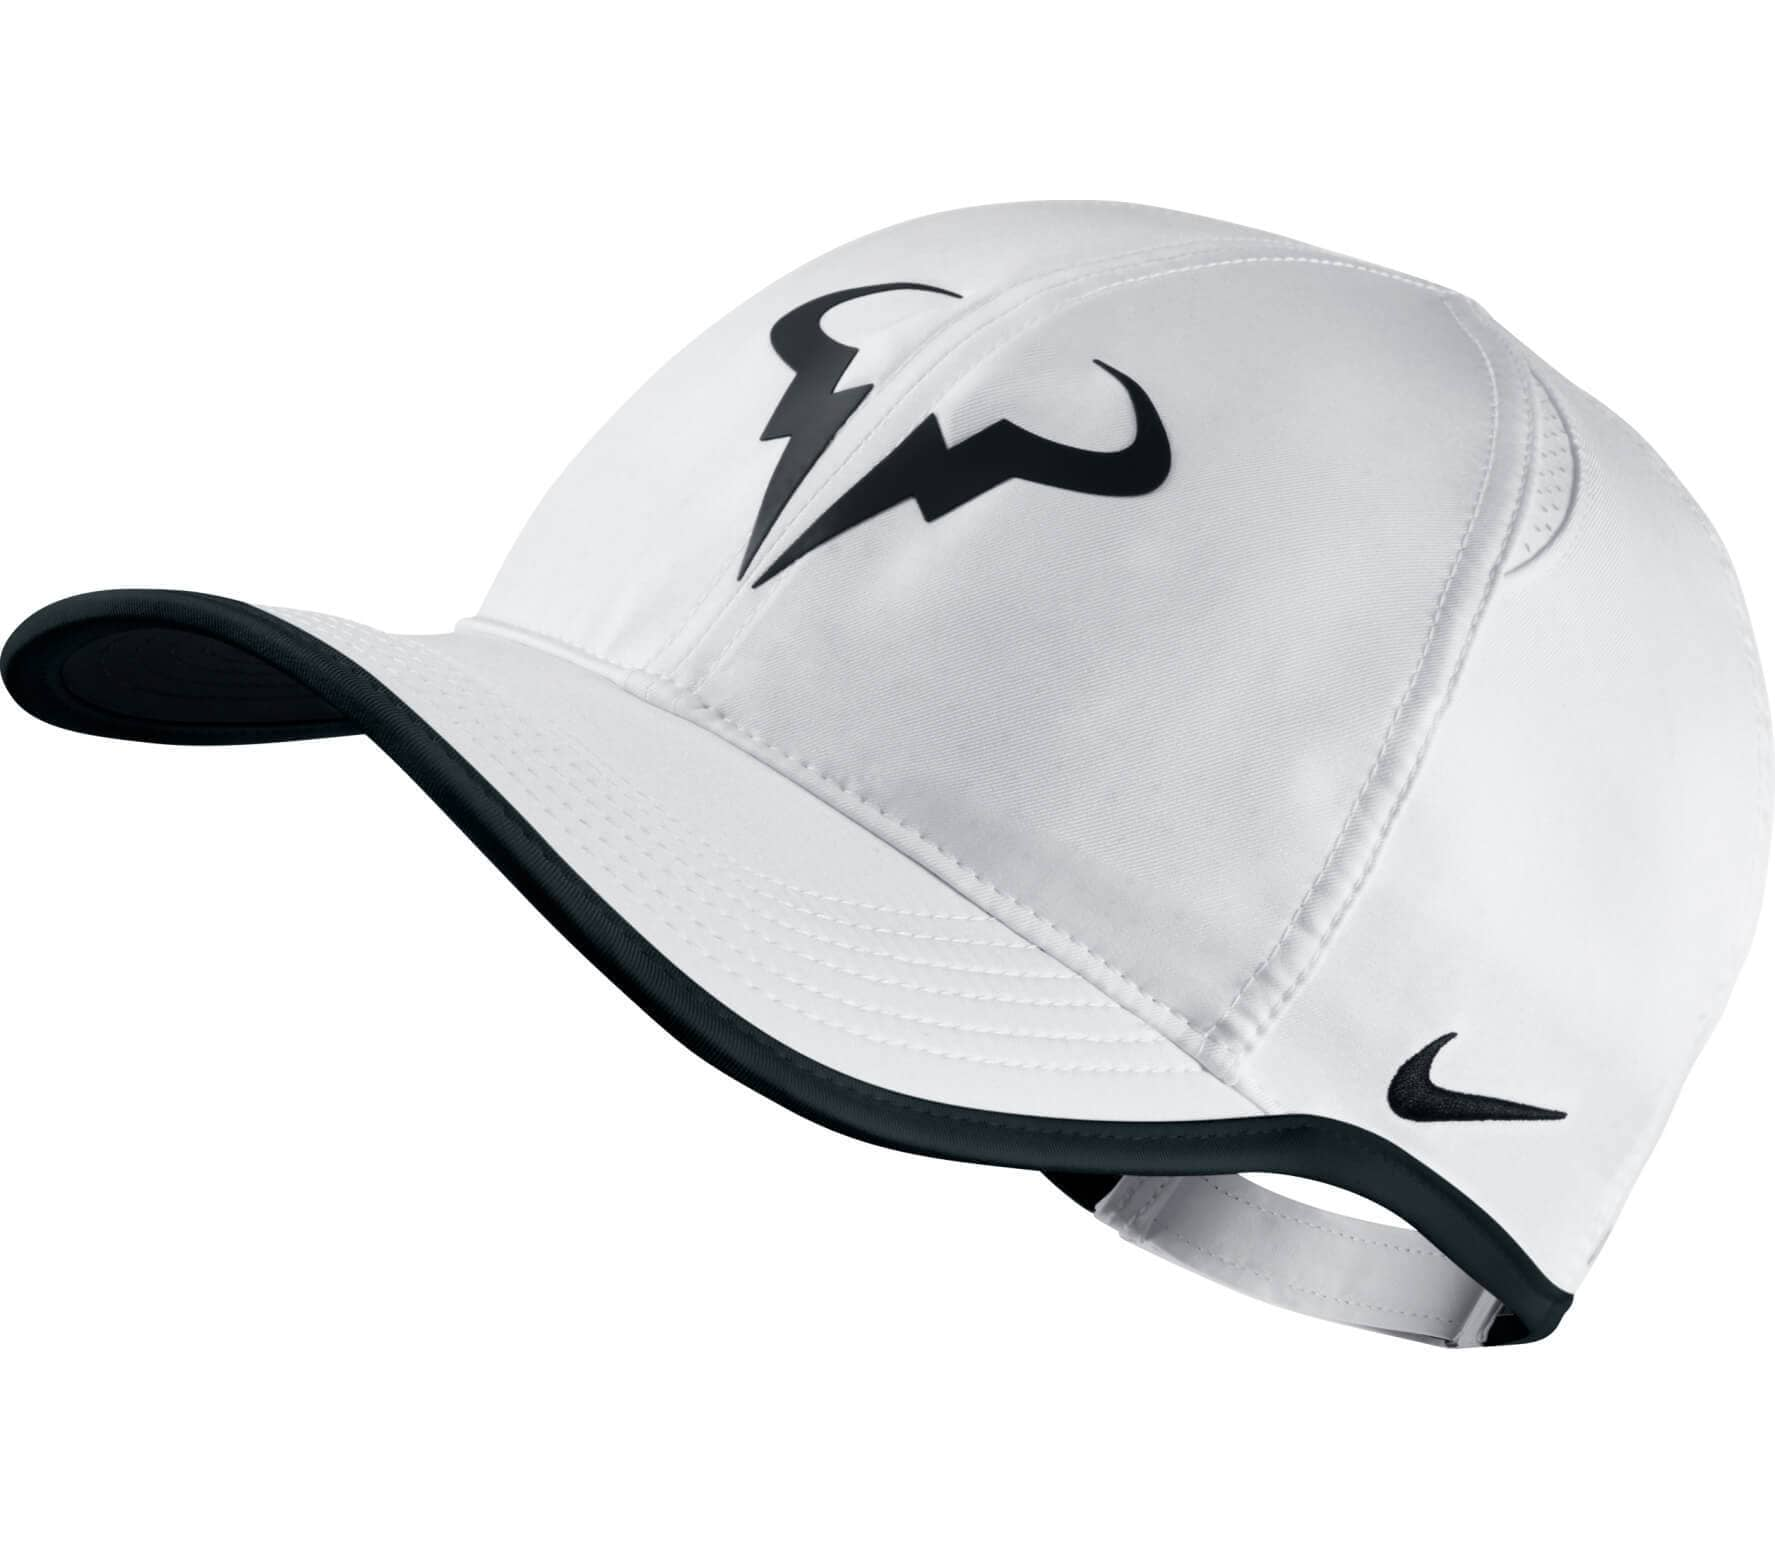 Nike - Rafa Nadal Featherlight tennis cap (white black) - buy it at ... 1efdefb8ead